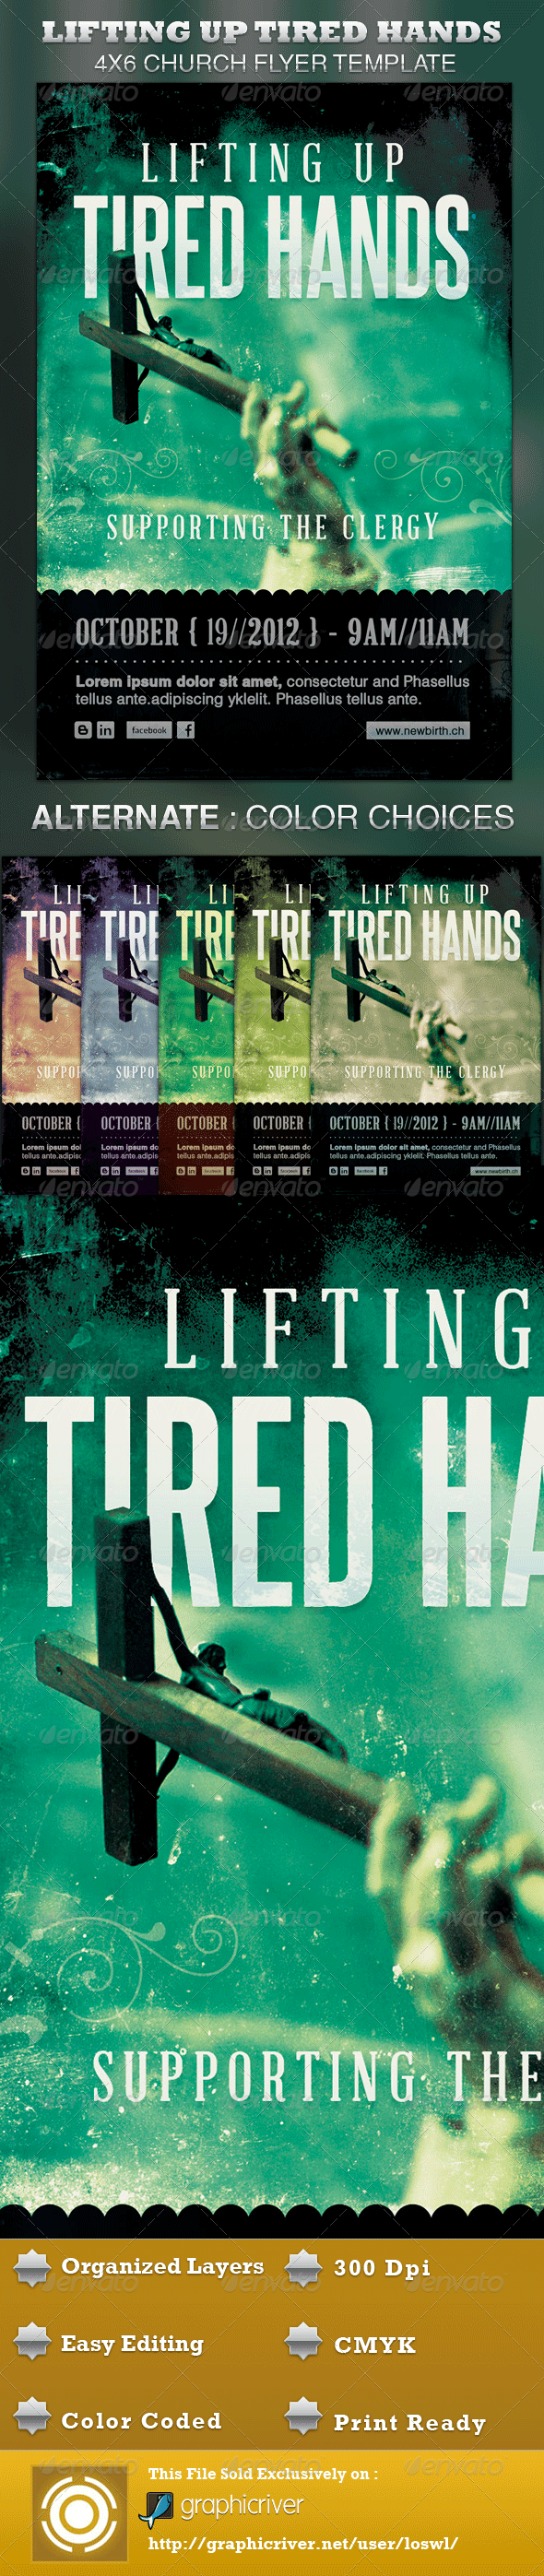 Lifting up Tired Hands Church Flyer Template